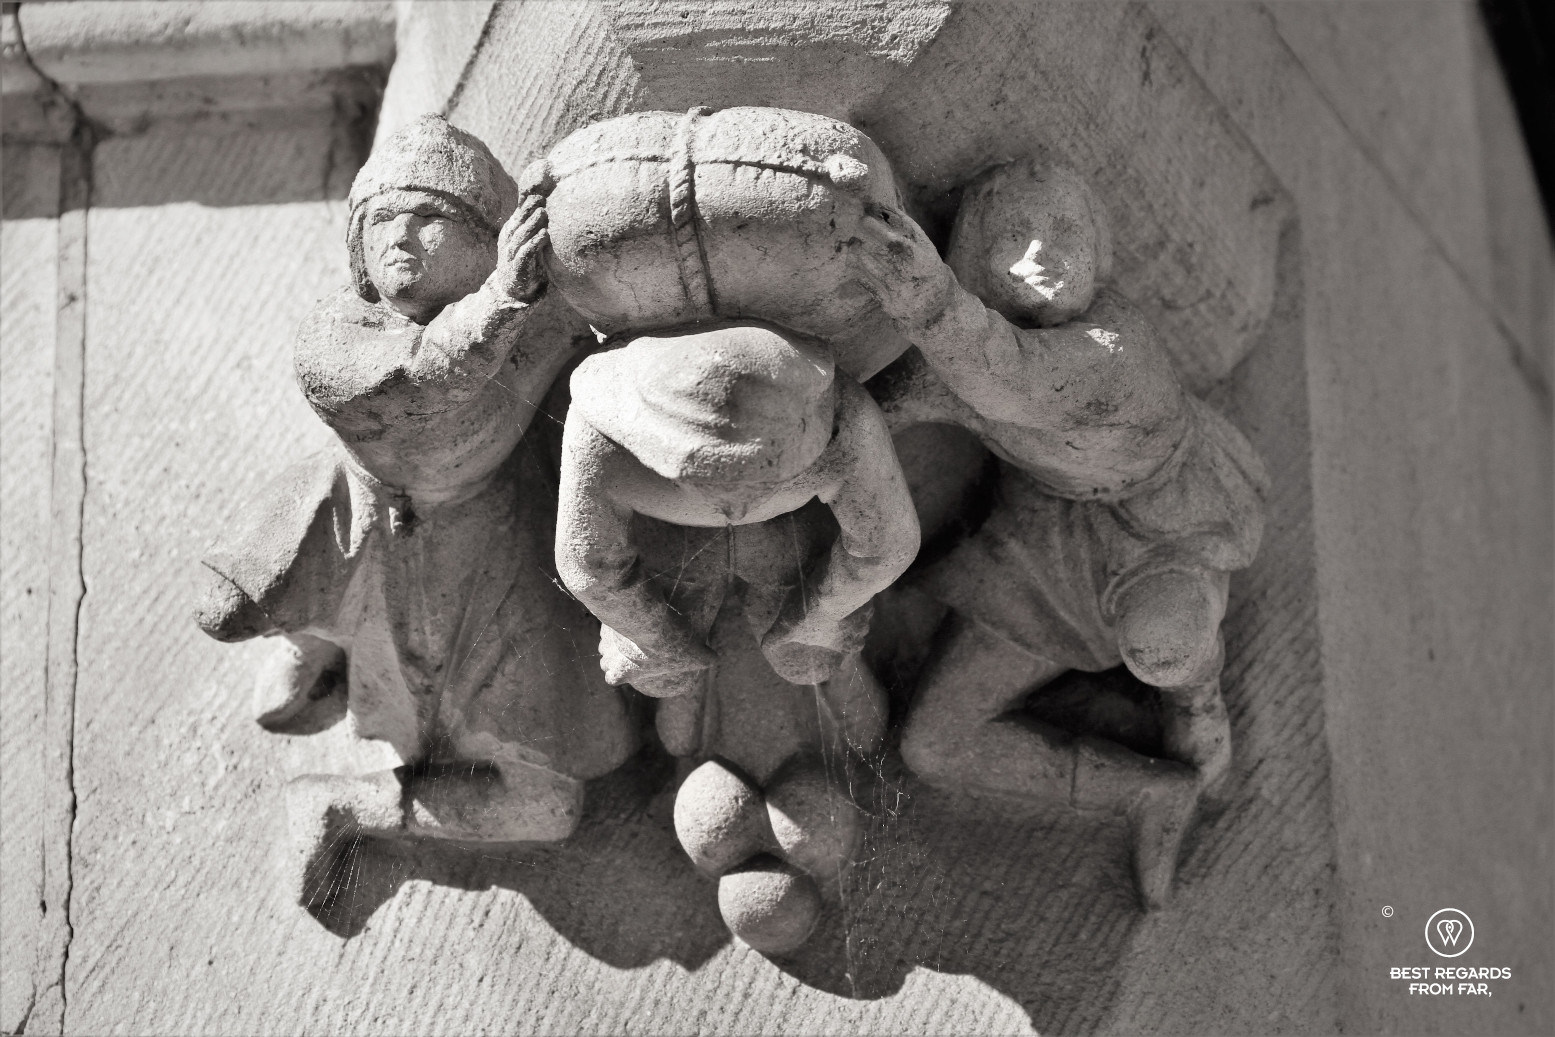 Detail on a building showing how cargo was carried during medieval times in Bruges